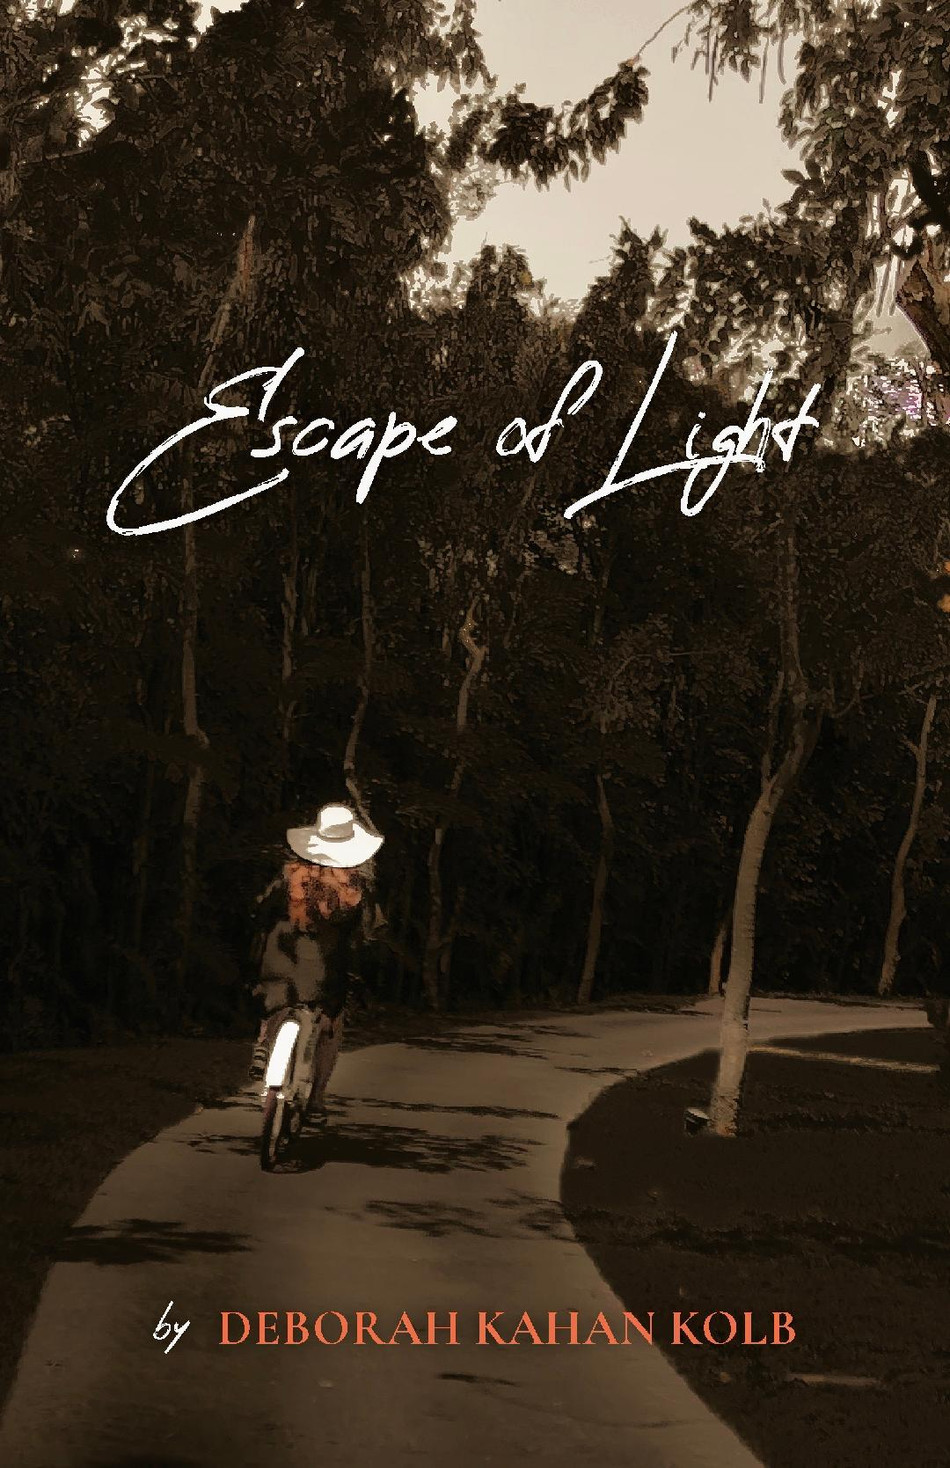 ESCAPE OF LIGHT now on sale!